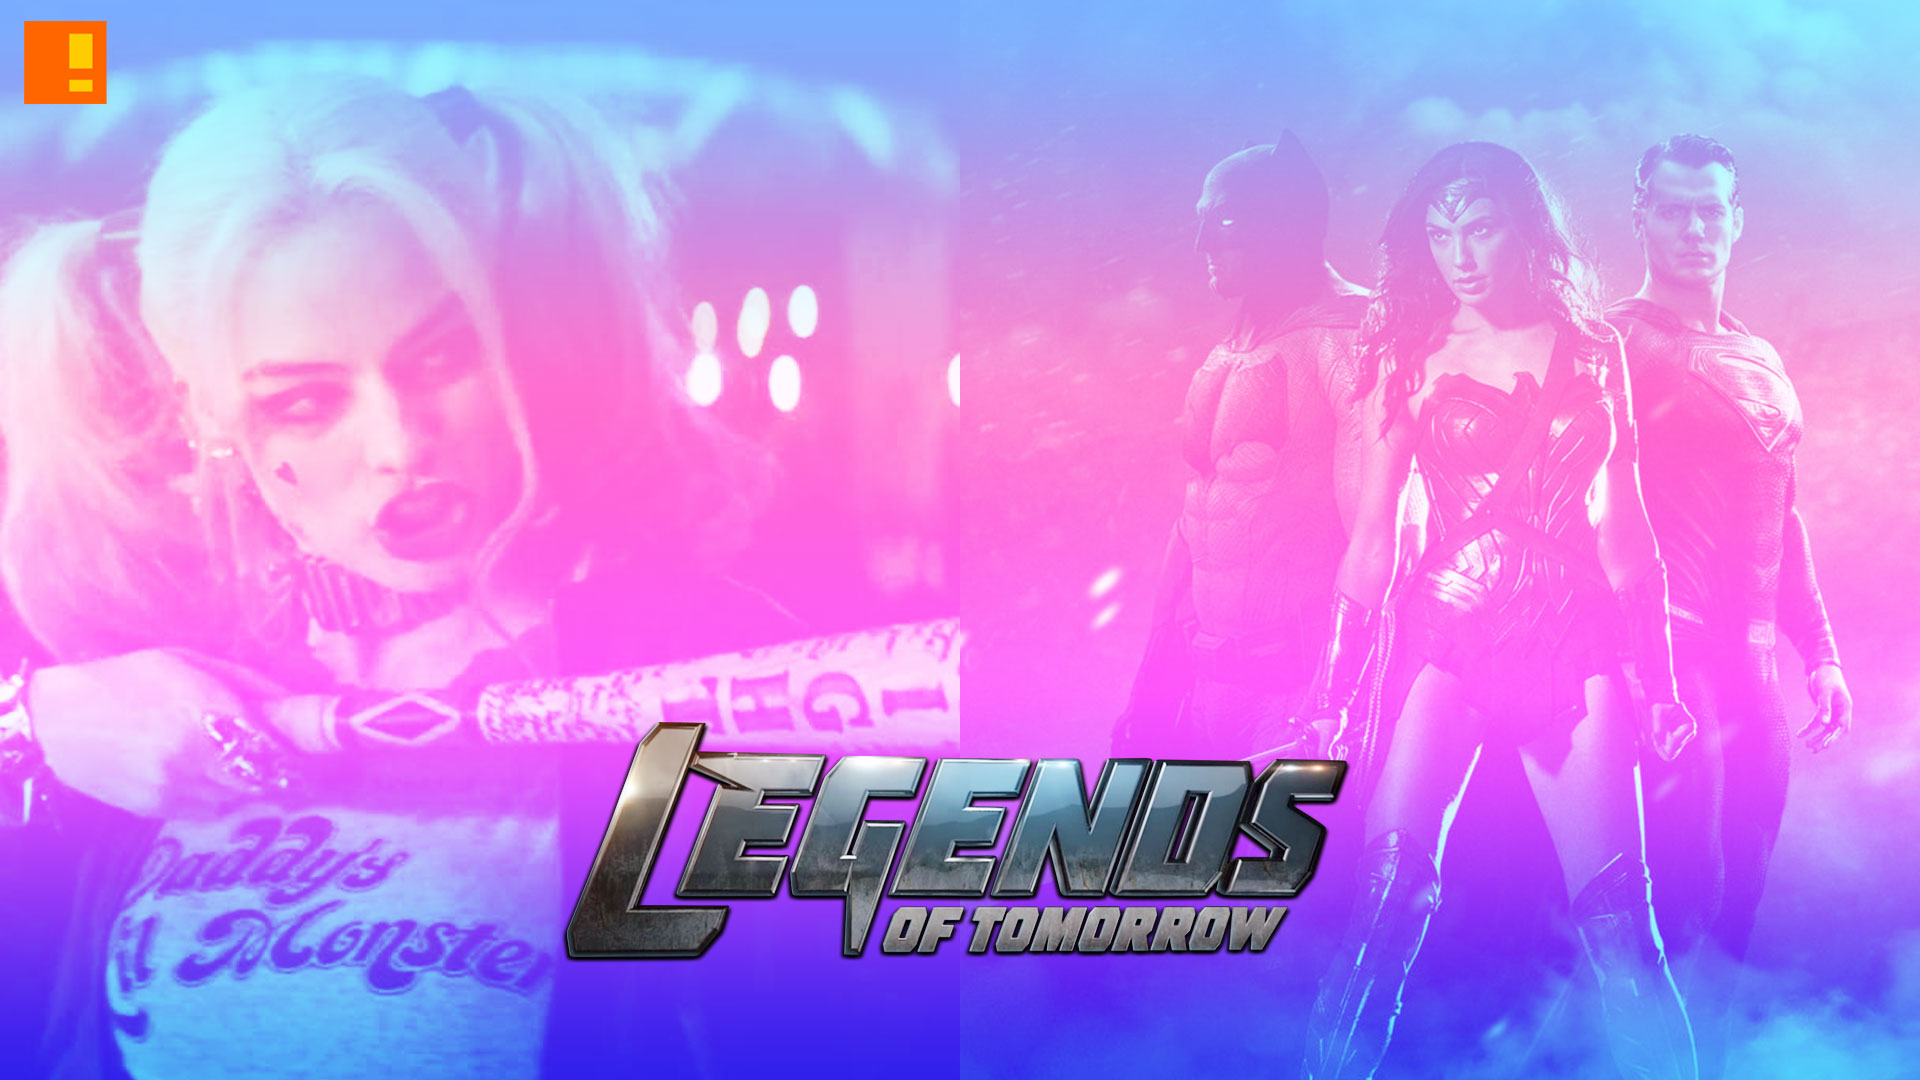 legends of tomorrow. suicide squad. batman vs superman. dawn of justice. the CW network. dc comics. entertainment on tap,